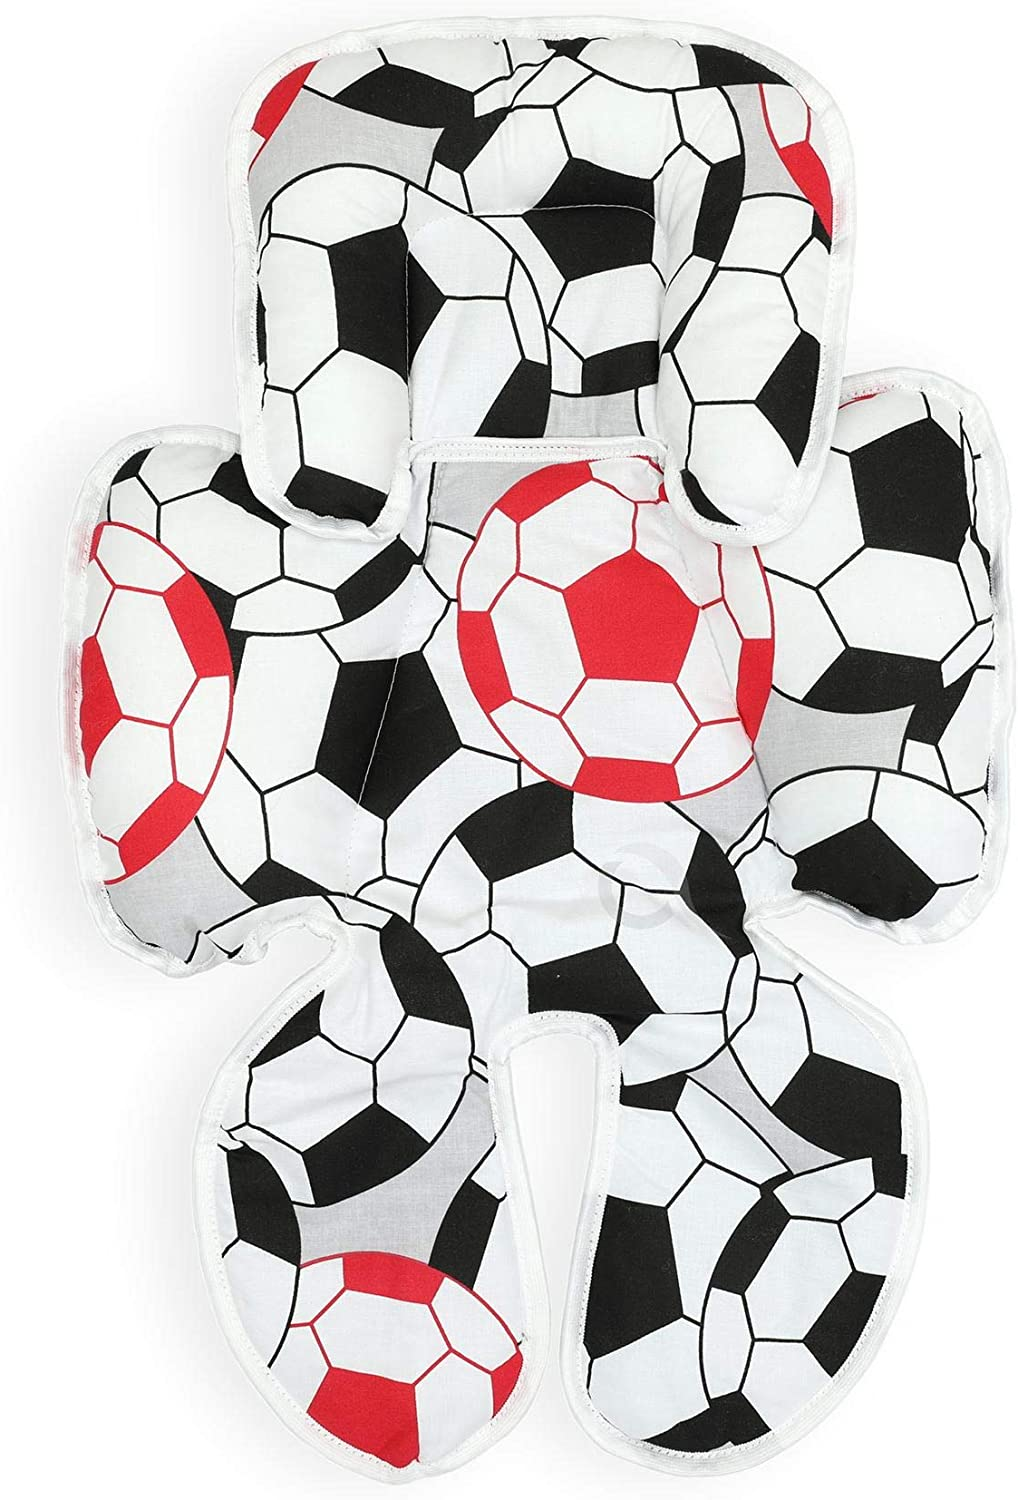 Black /& red Football OLOBABY Total Body Support Infant Snuzzler Reducer Head and Body Support Anti Allergic Cotton